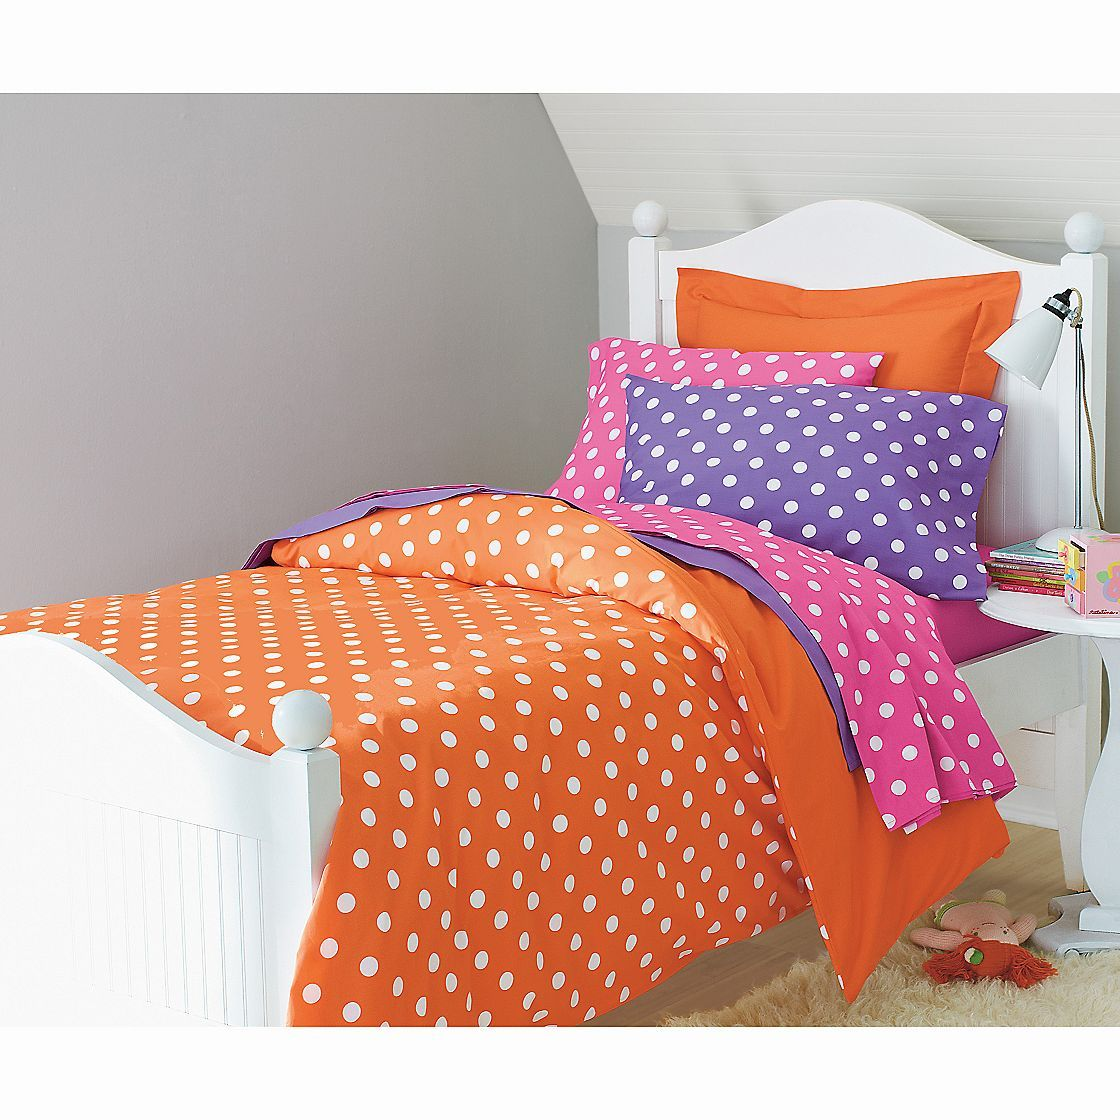 Pin By J Miller On Mia Comforter Cover Girly Room Decor Girl Beds